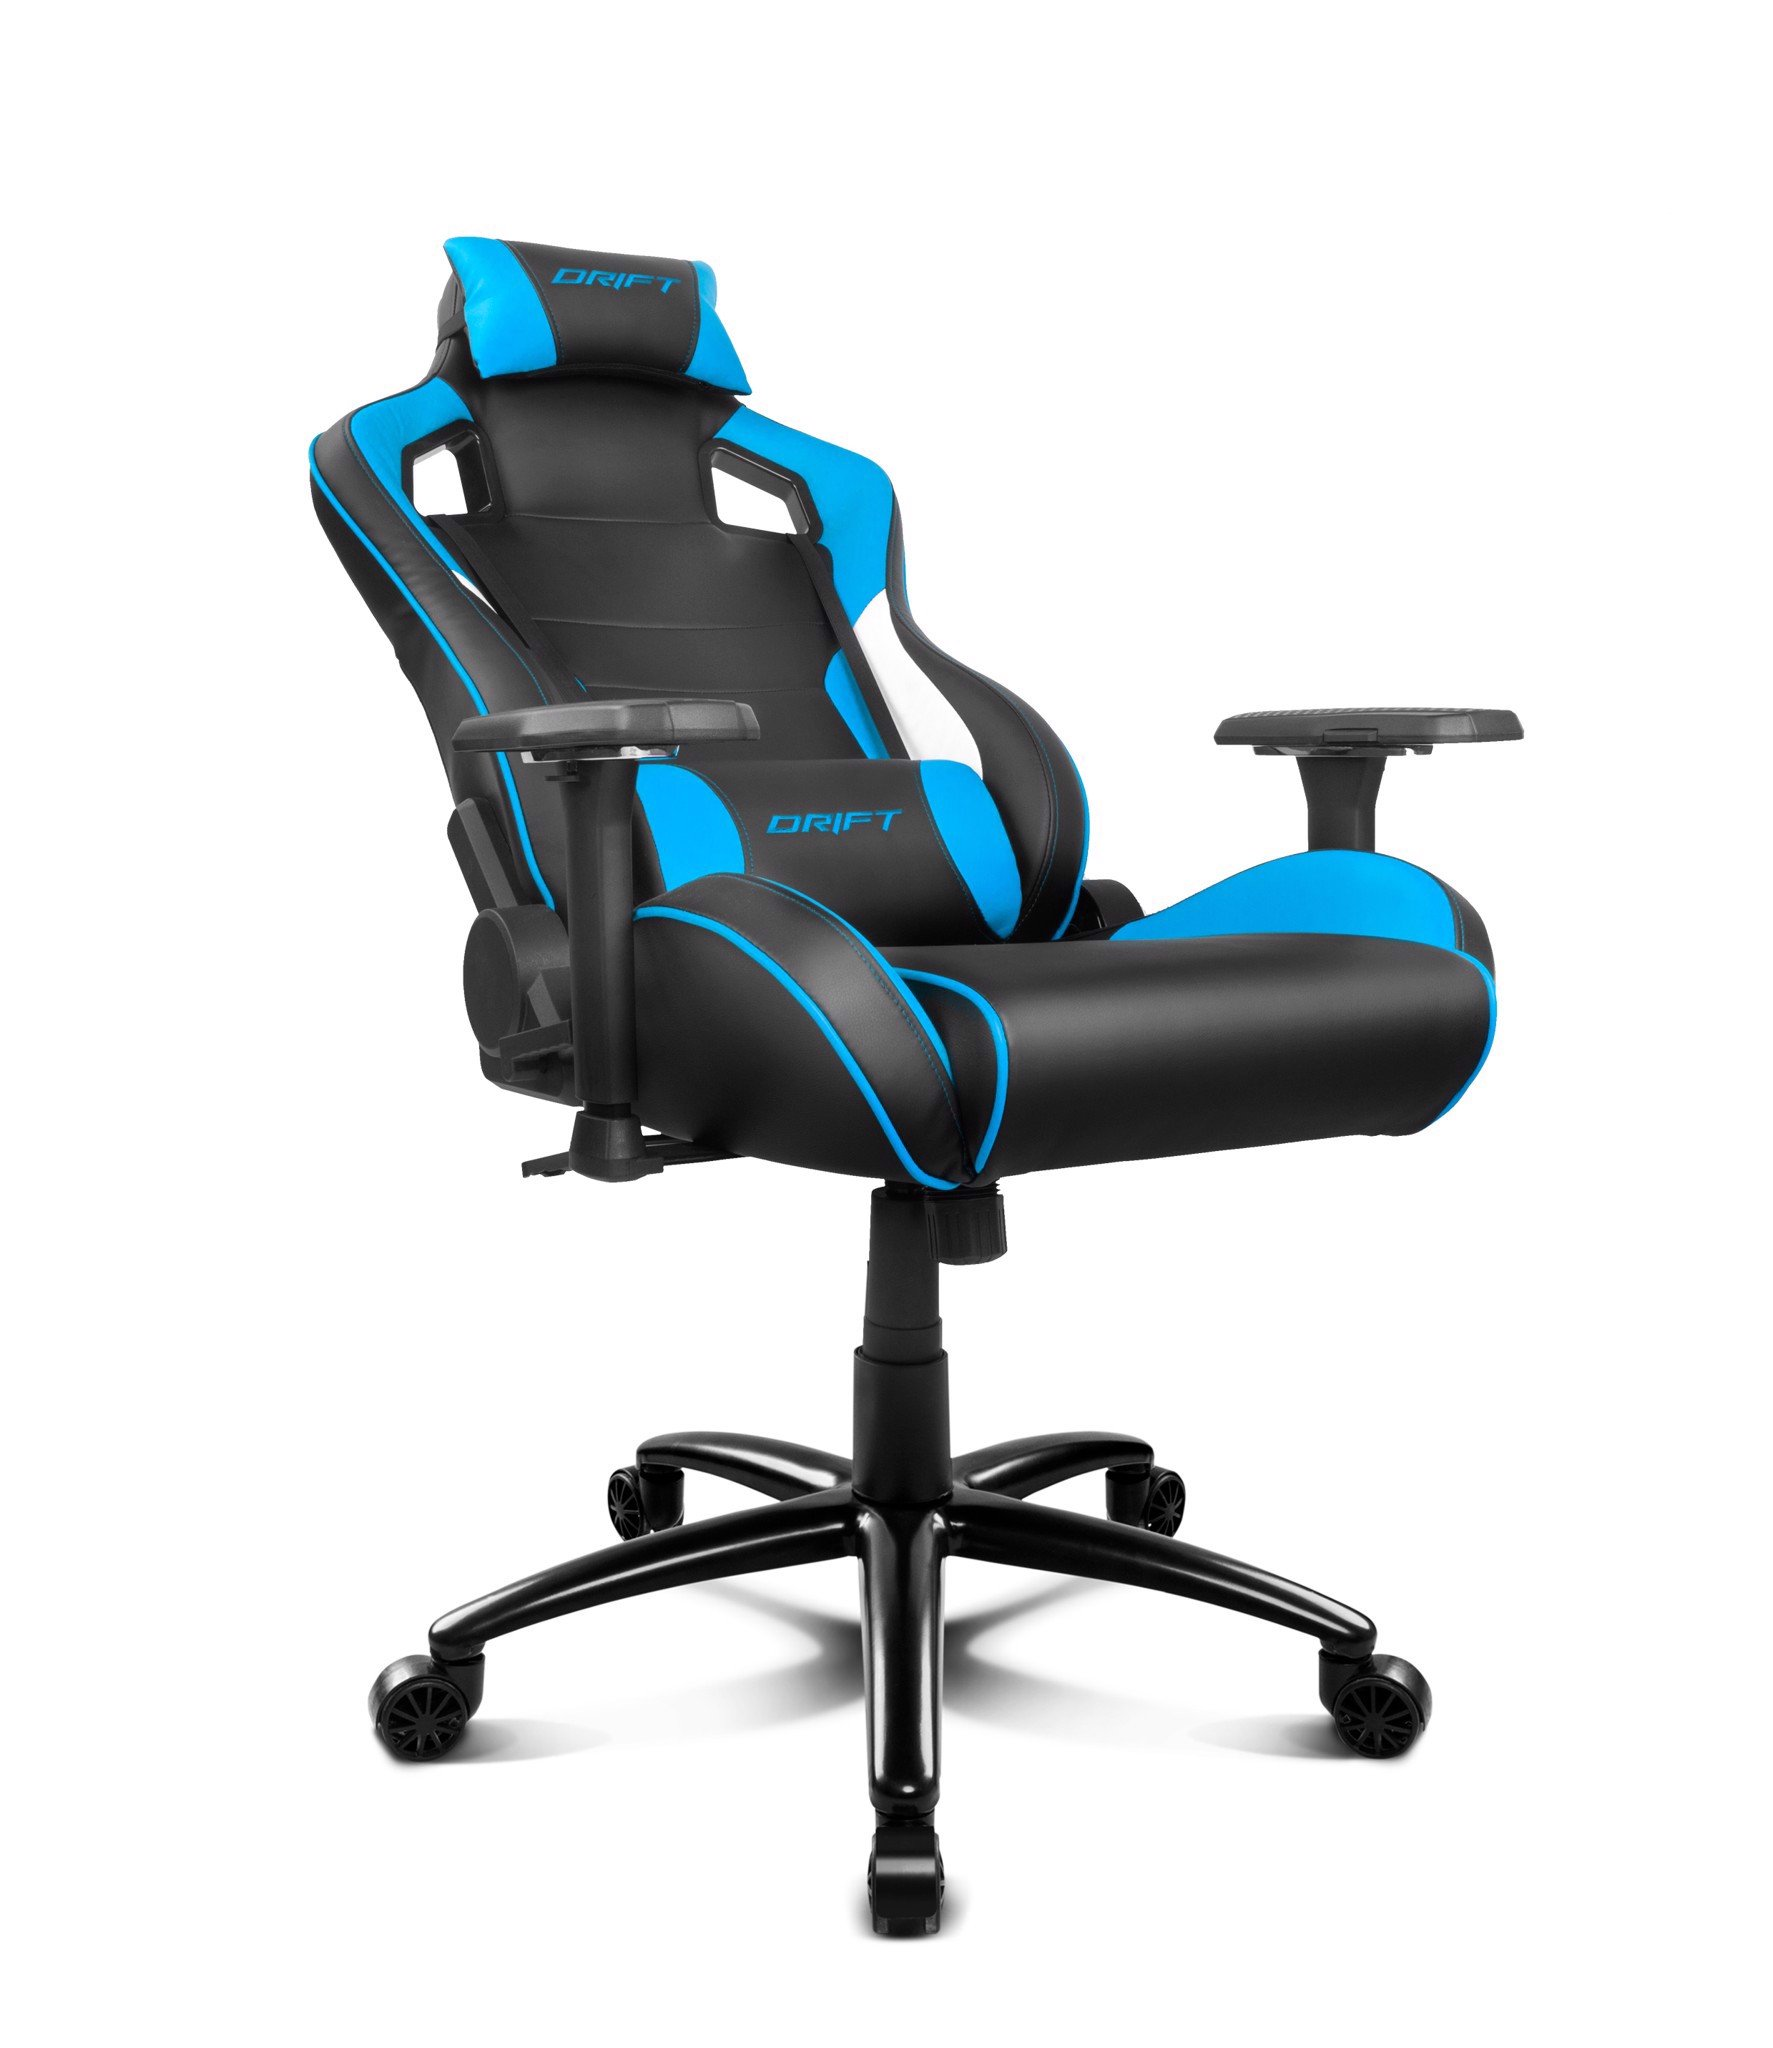 Ghế Gaming Drift DR400